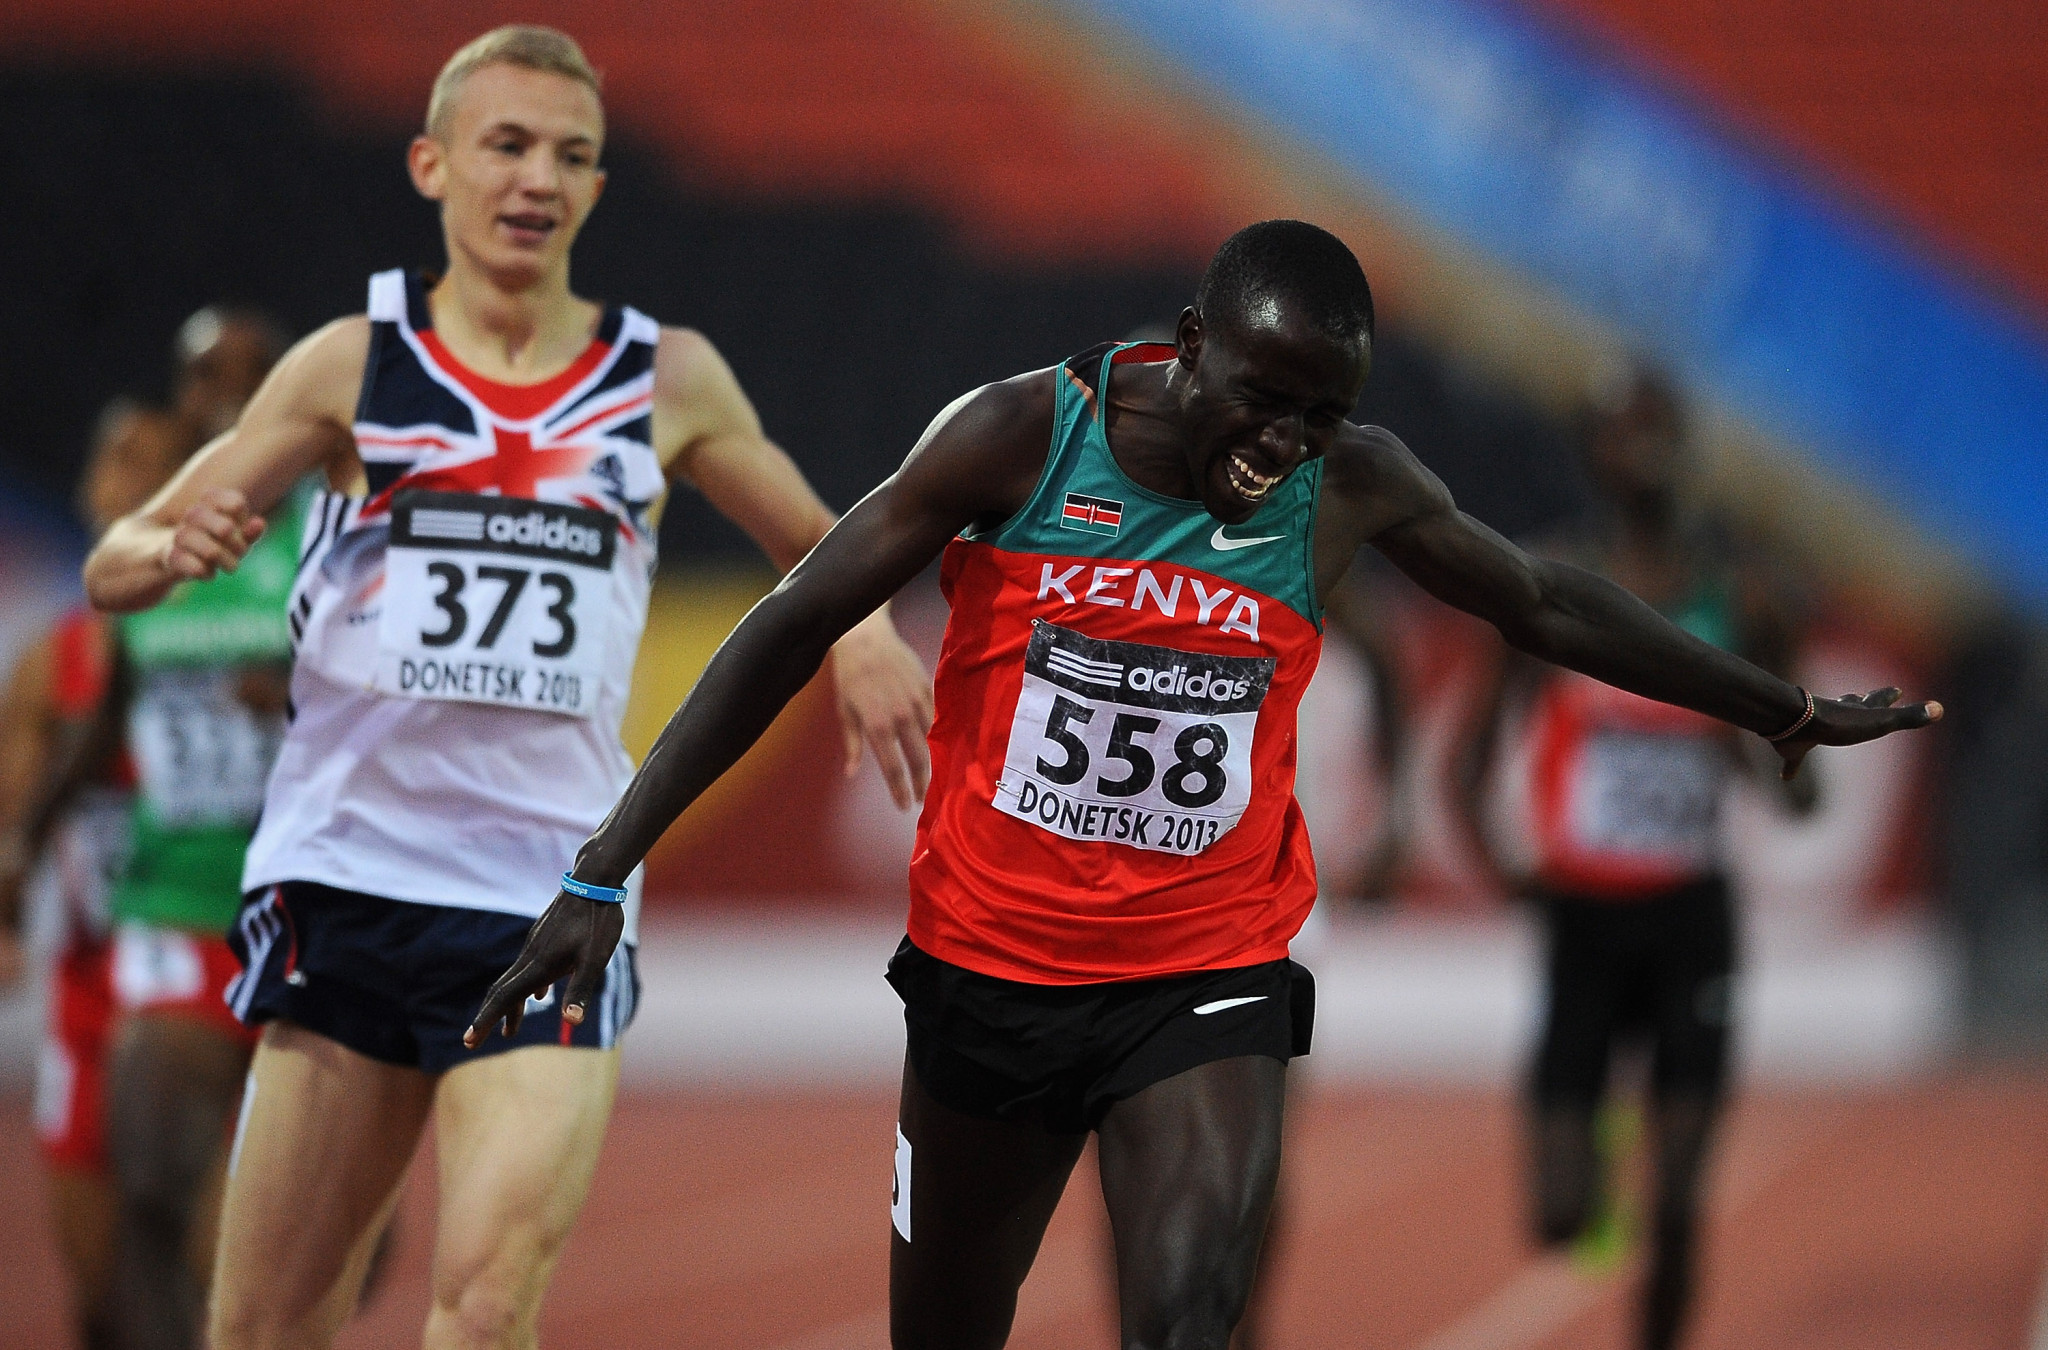 Britain's Kyle Langford, left, took to Twitter after Alfred Kipketer, right, who beat him to the 2013 IAAF World Youth Championship 800m title in Donetsk, was provisionally suspended by the AIU ©Getty Images